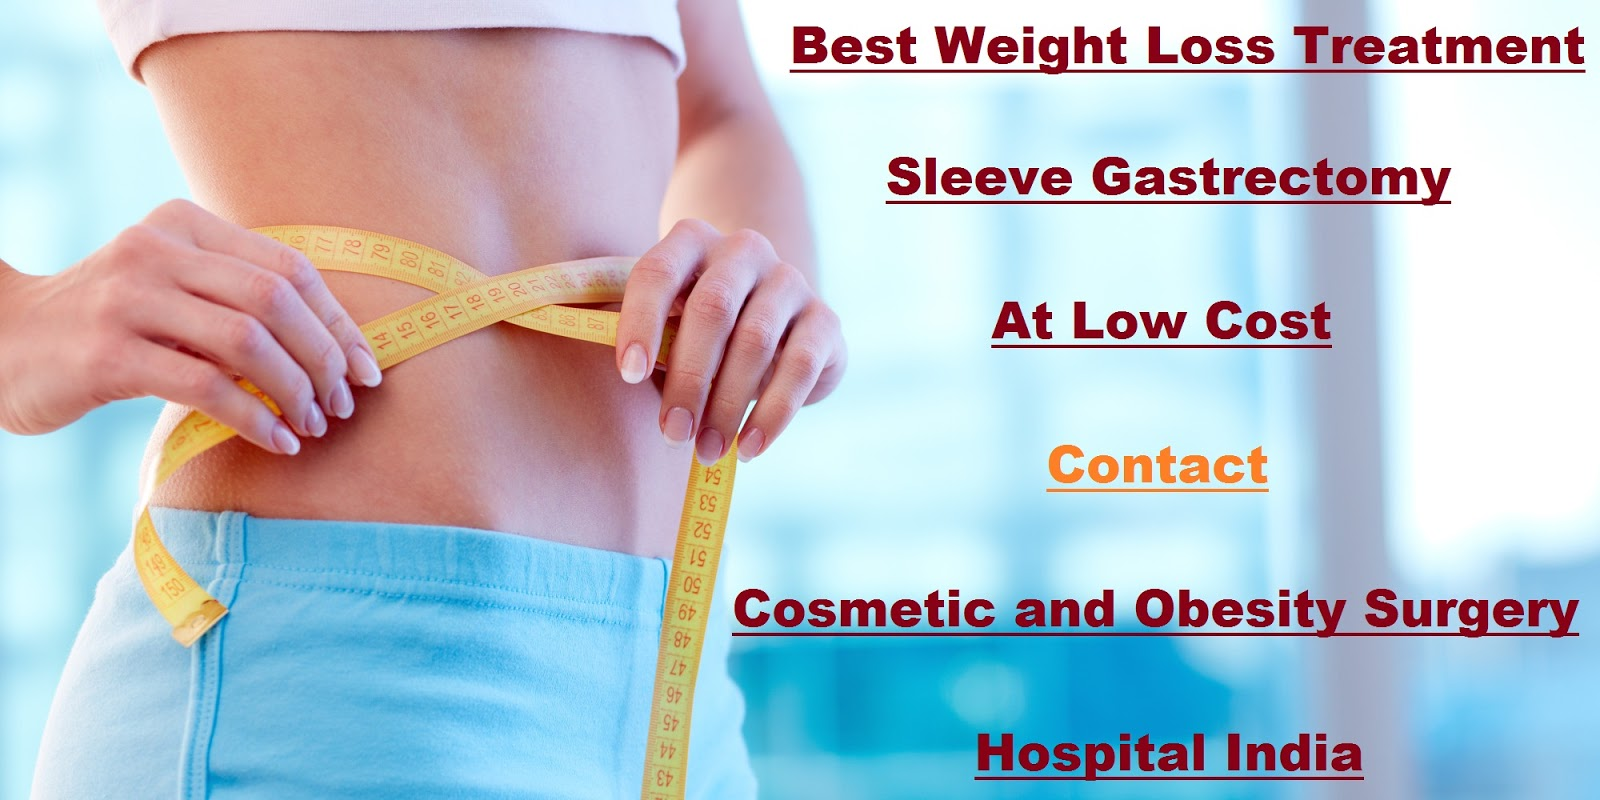 Where To Get Best Lowest Cost Sleeve Gastrectomy Treatment In India